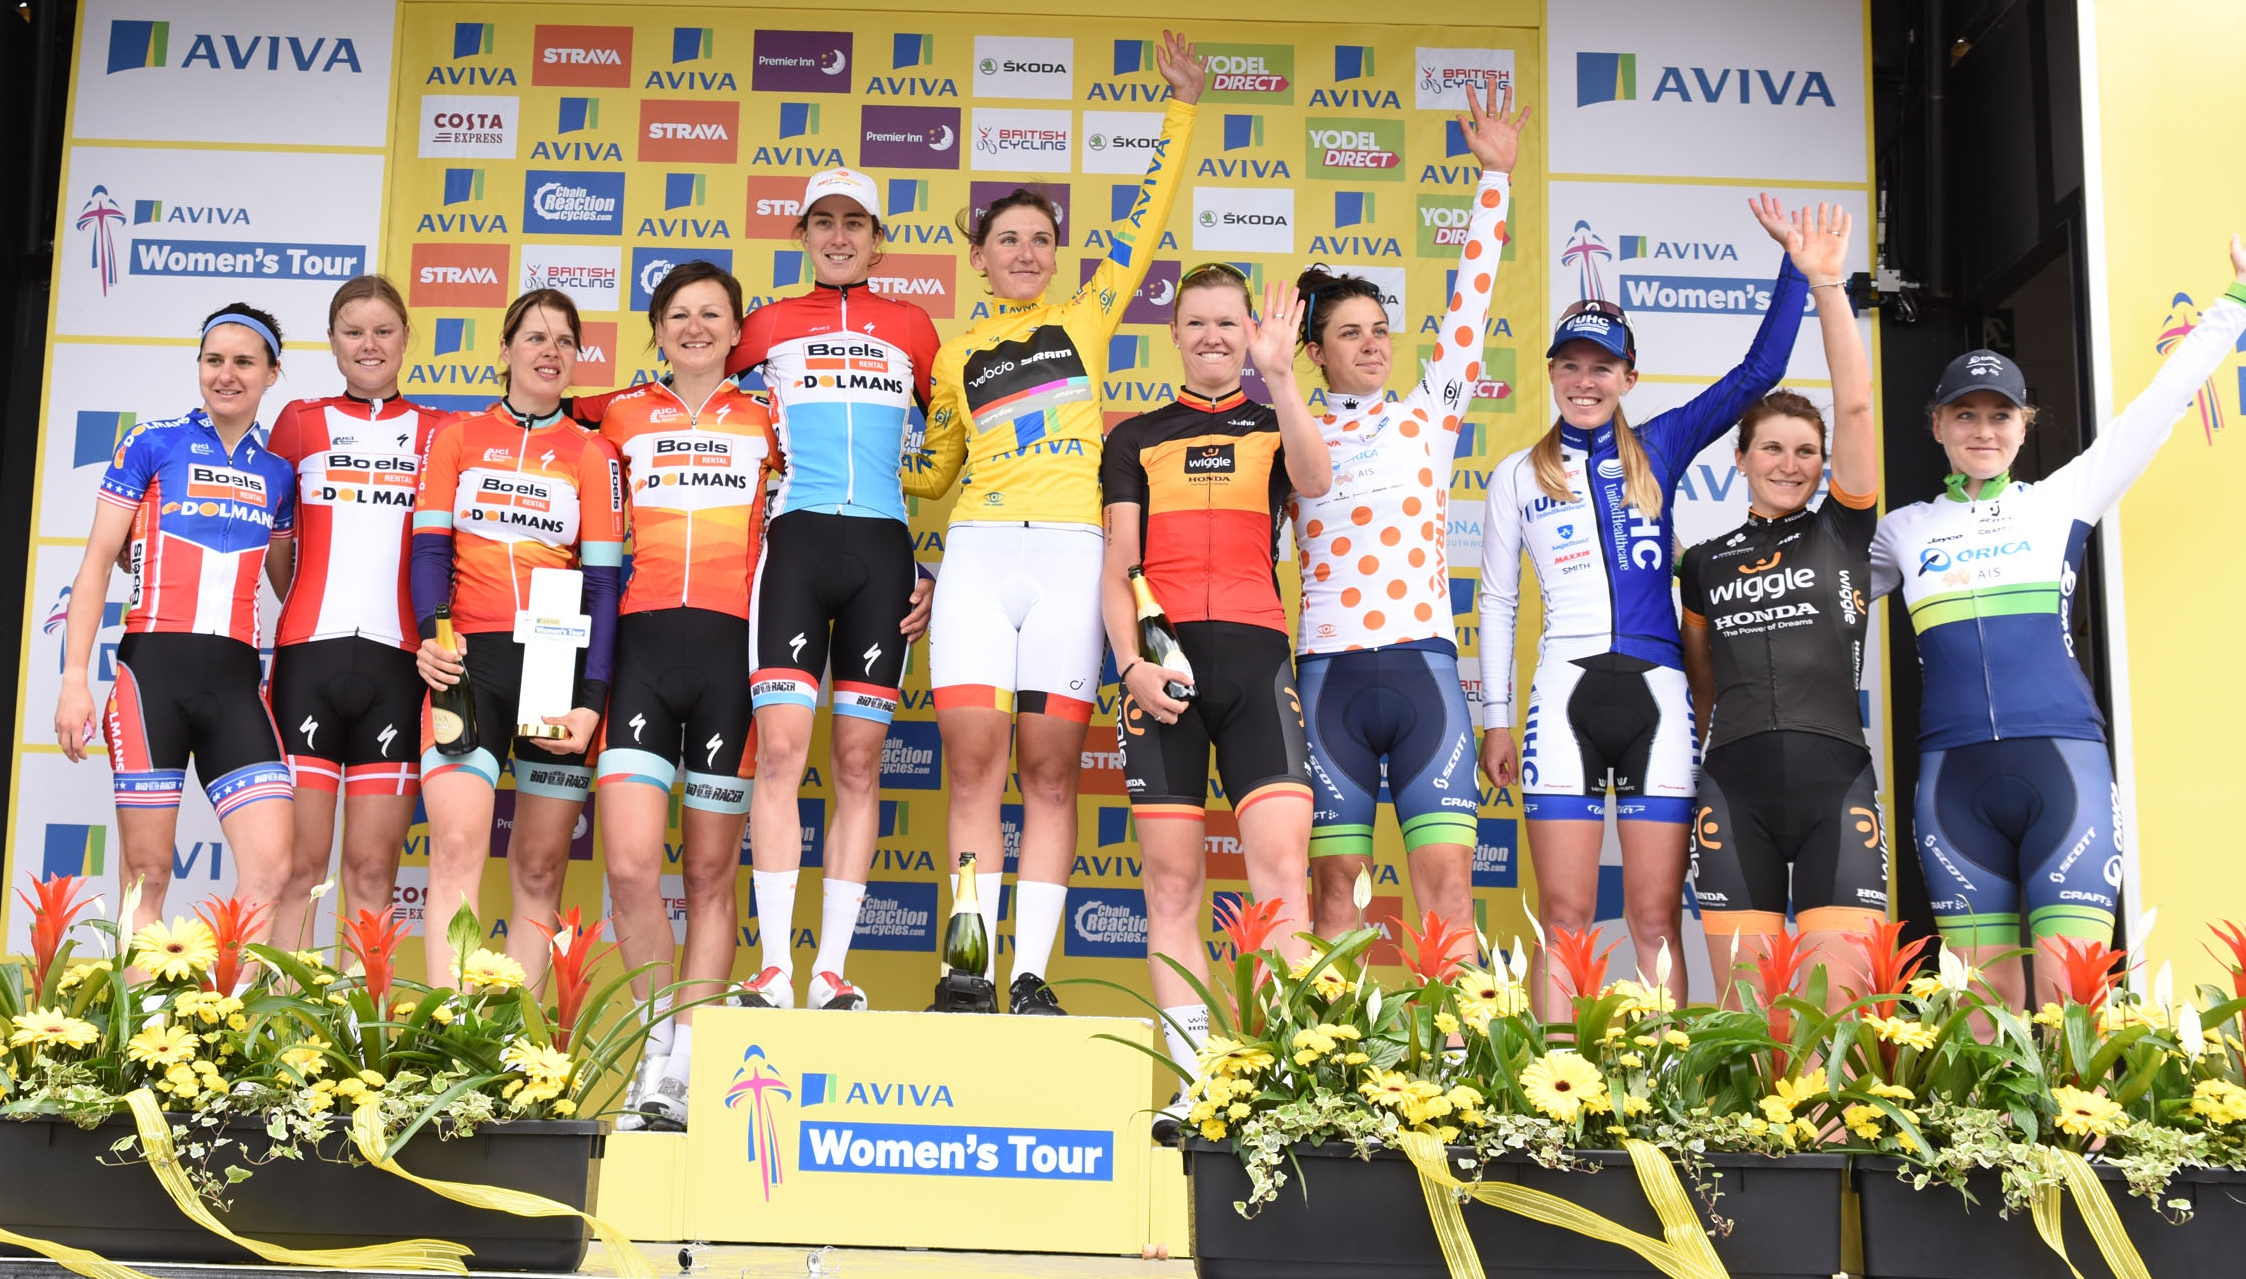 2016 Aviva Women's Tour to be launched on Wednesday 3rd February